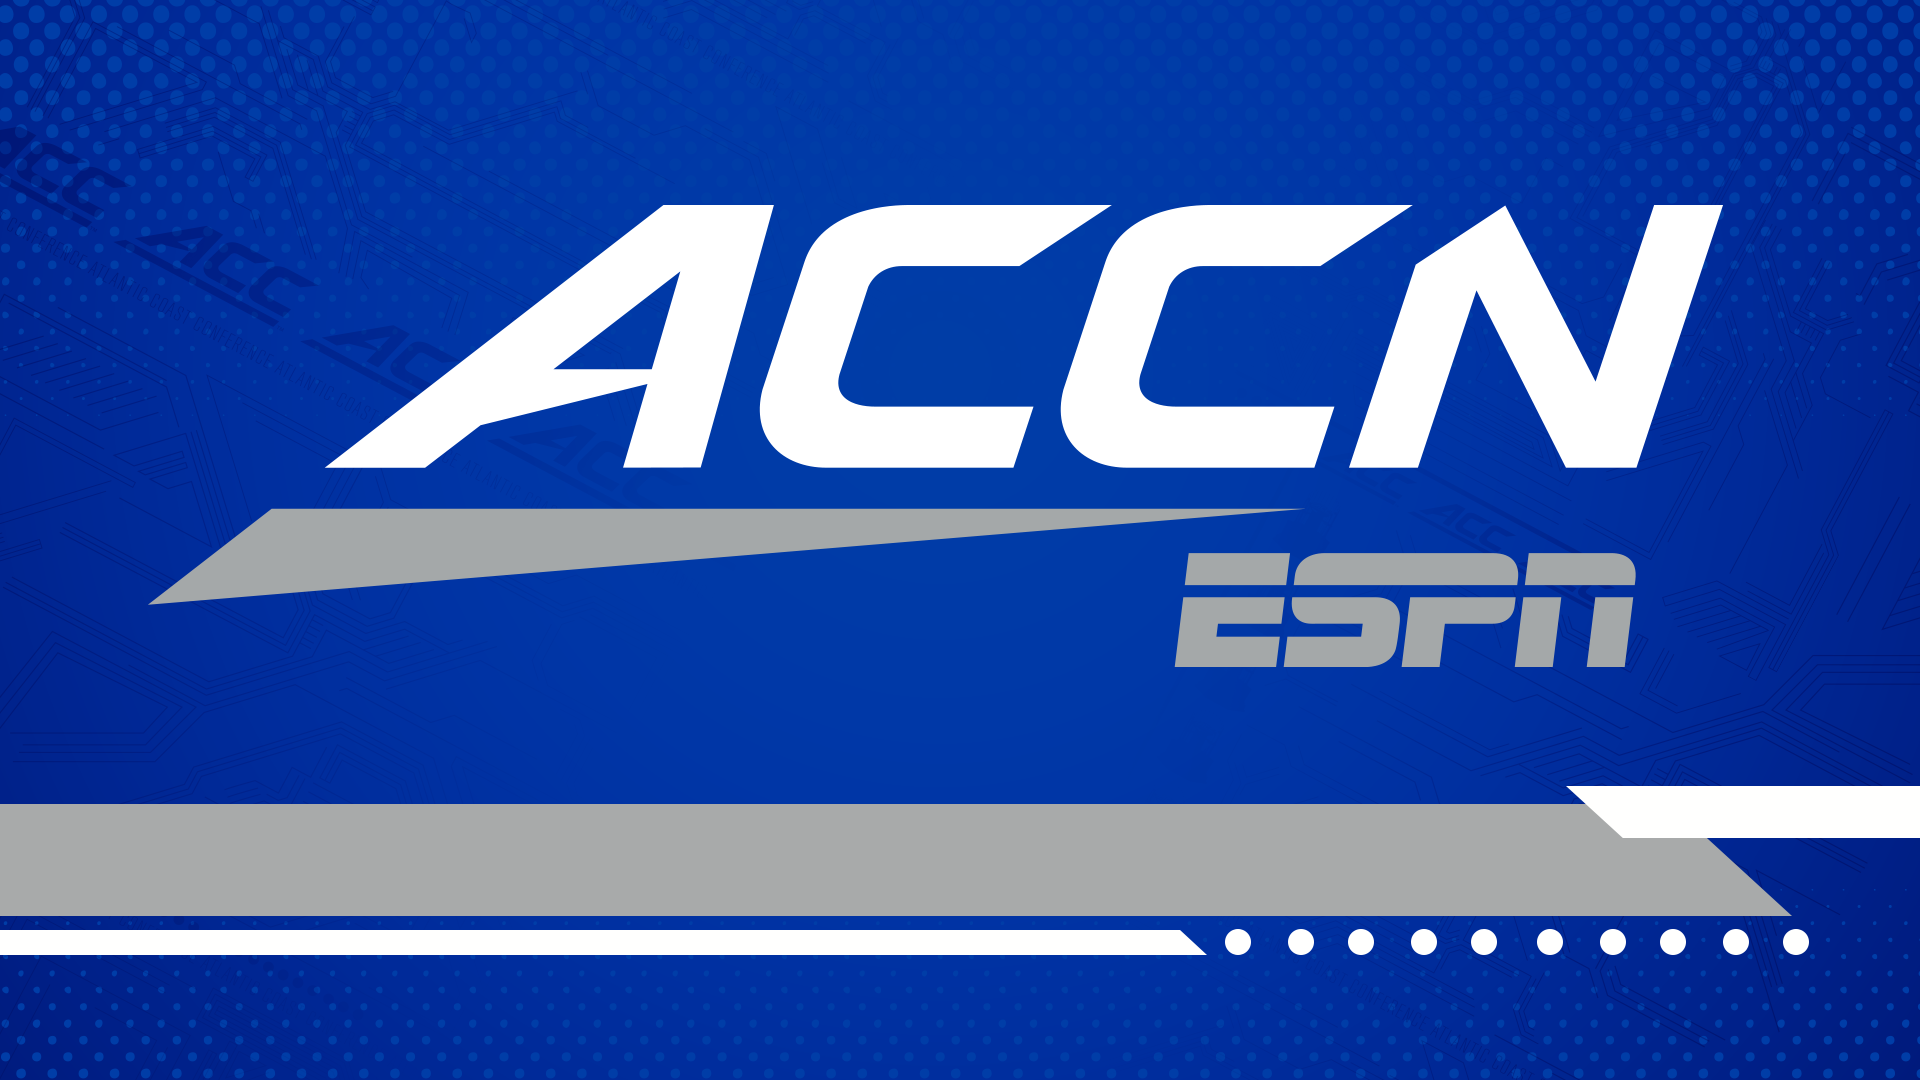 Charter/Spectrum to Carry ACC Network - Atlantic Coast